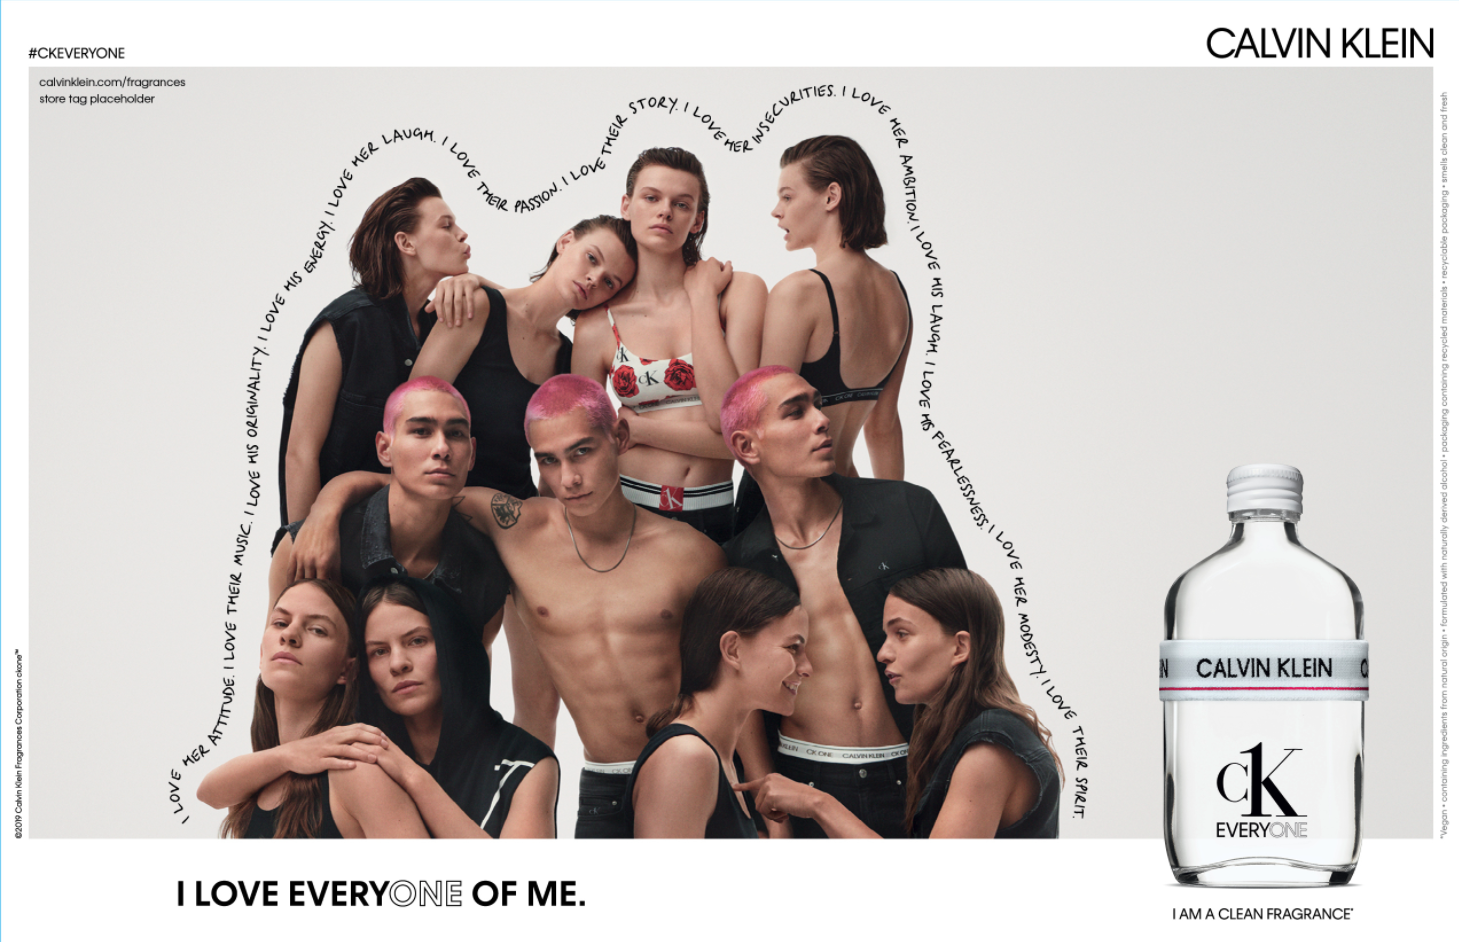 An advertisement for Calvin Klein's CK Everyone fragrance, featuring several models interacting with each other in a group shot.